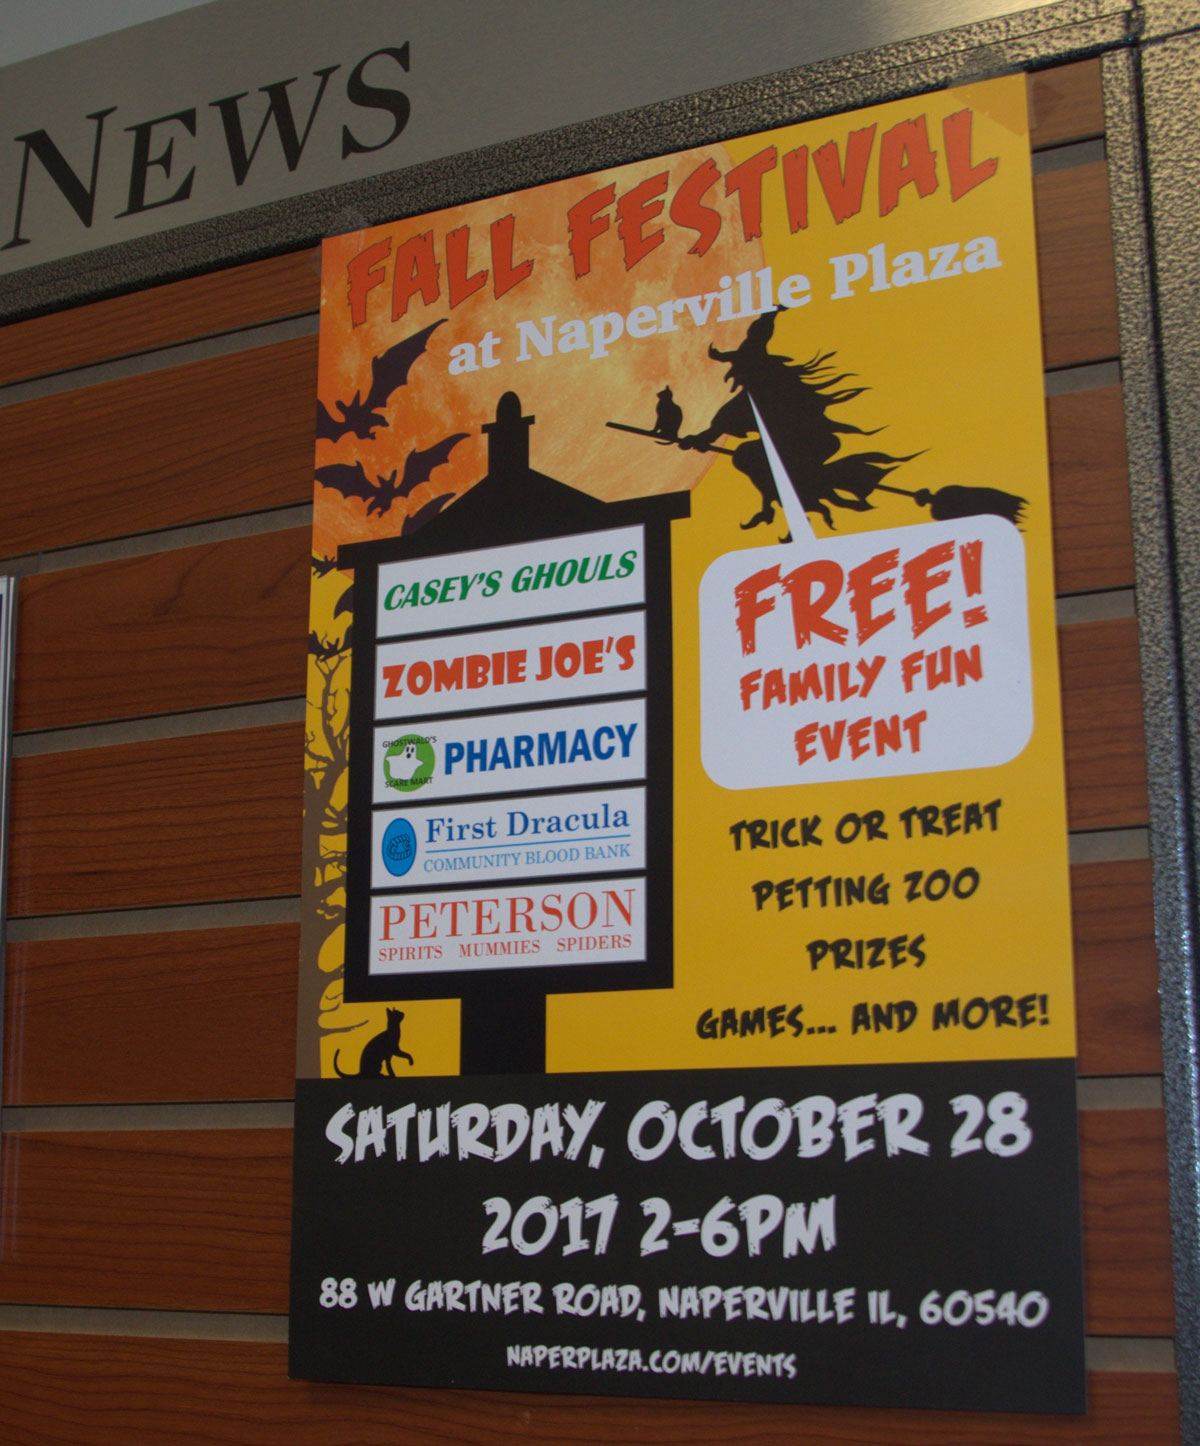 Halloween Hop – Sunday, October 28, 2020, Downtown Naperville, October 28 Celebrate safely! Halloween weekend has arrived in Naperville